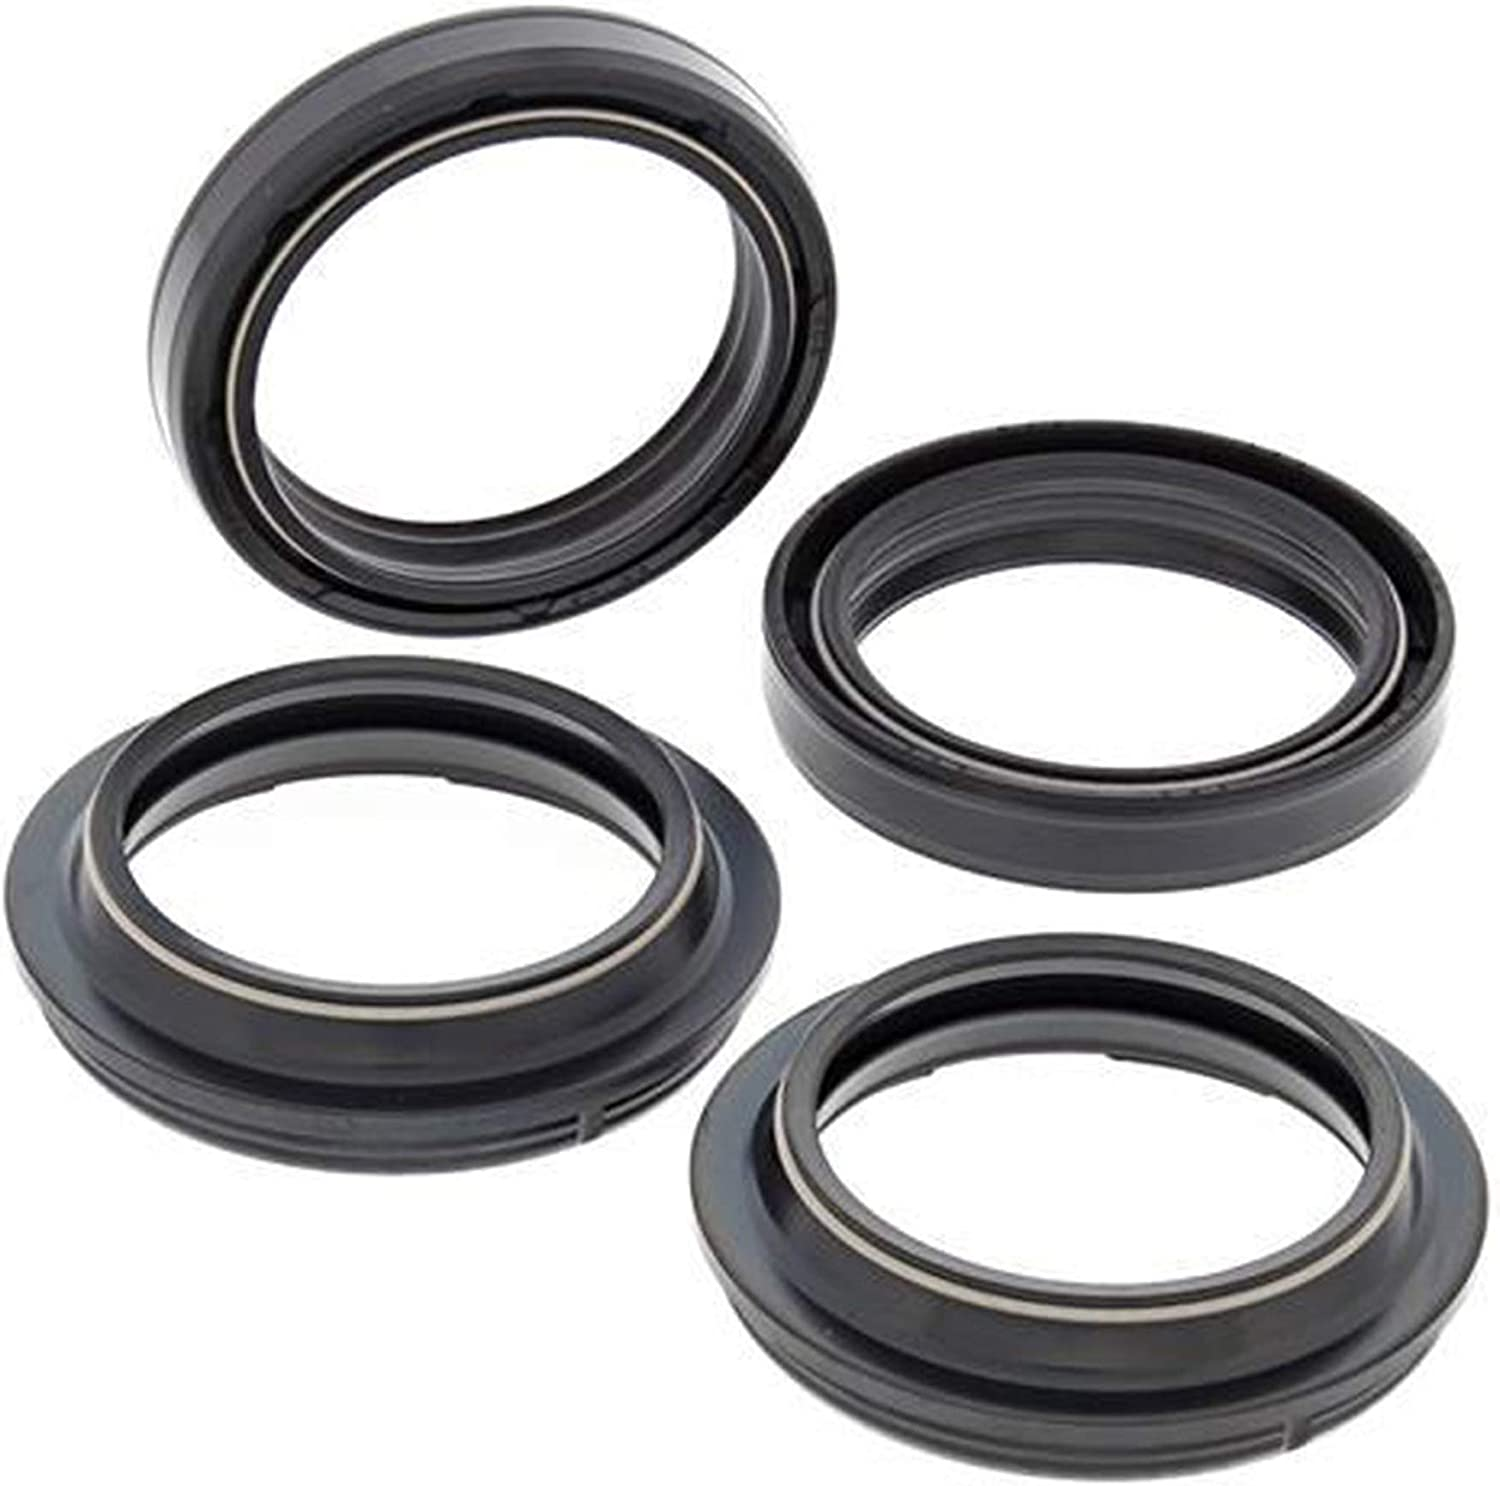 Fork and Dust Seal Kit Fits 2008 Victory Arlen Ness Jackpot